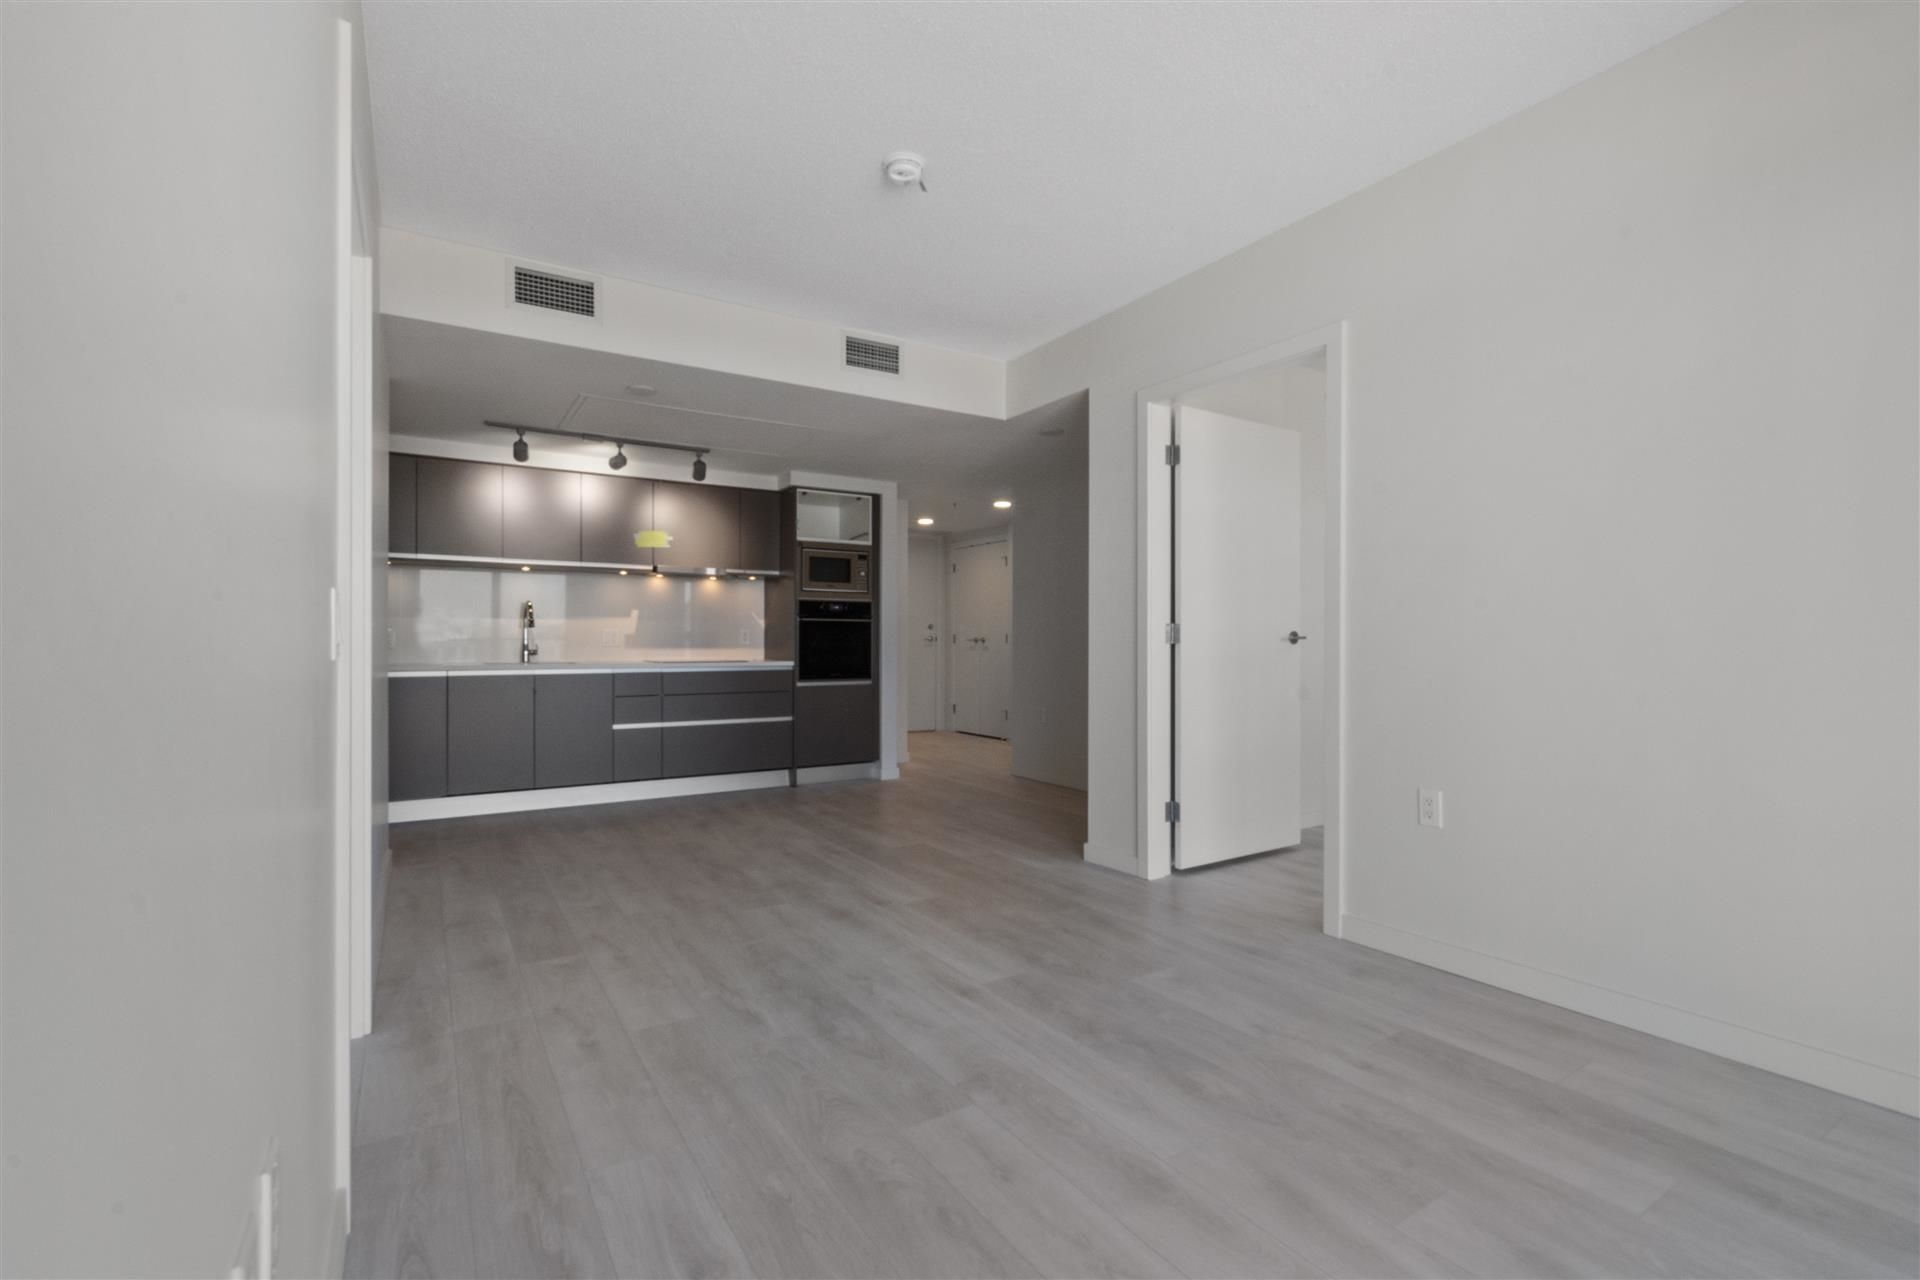 Main Photo: 1210 180 E 2ND Avenue in Vancouver: Mount Pleasant VE Condo for sale (Vancouver East)  : MLS®# R2600610